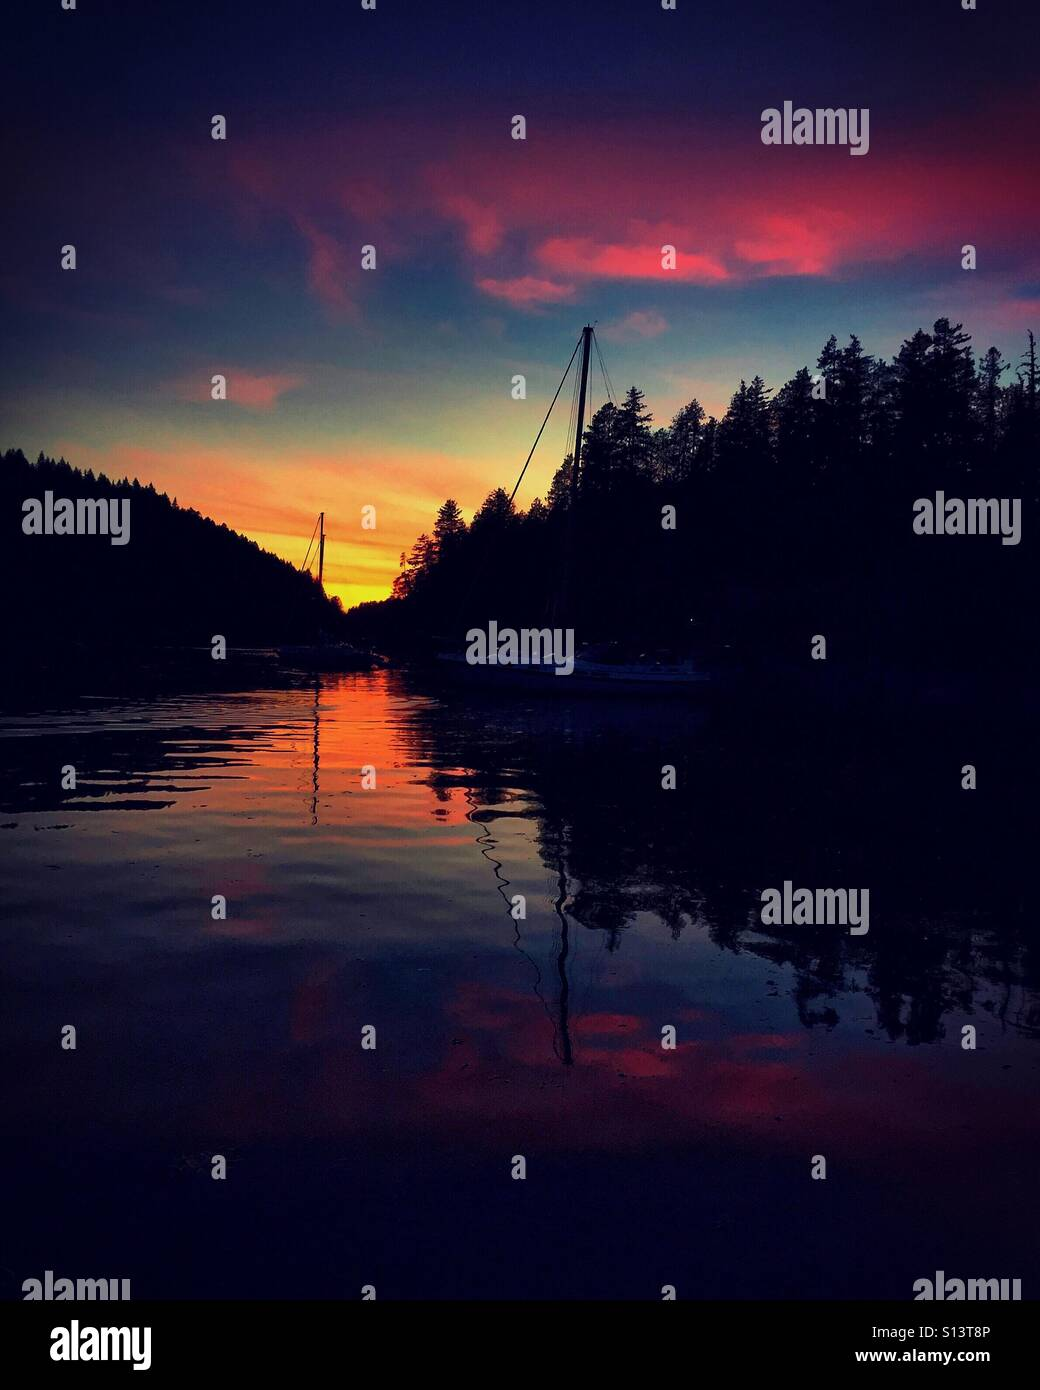 A rich and vibrant sunset fills the anchorage in Desolation Sound on a warm, summer night. - Stock Image